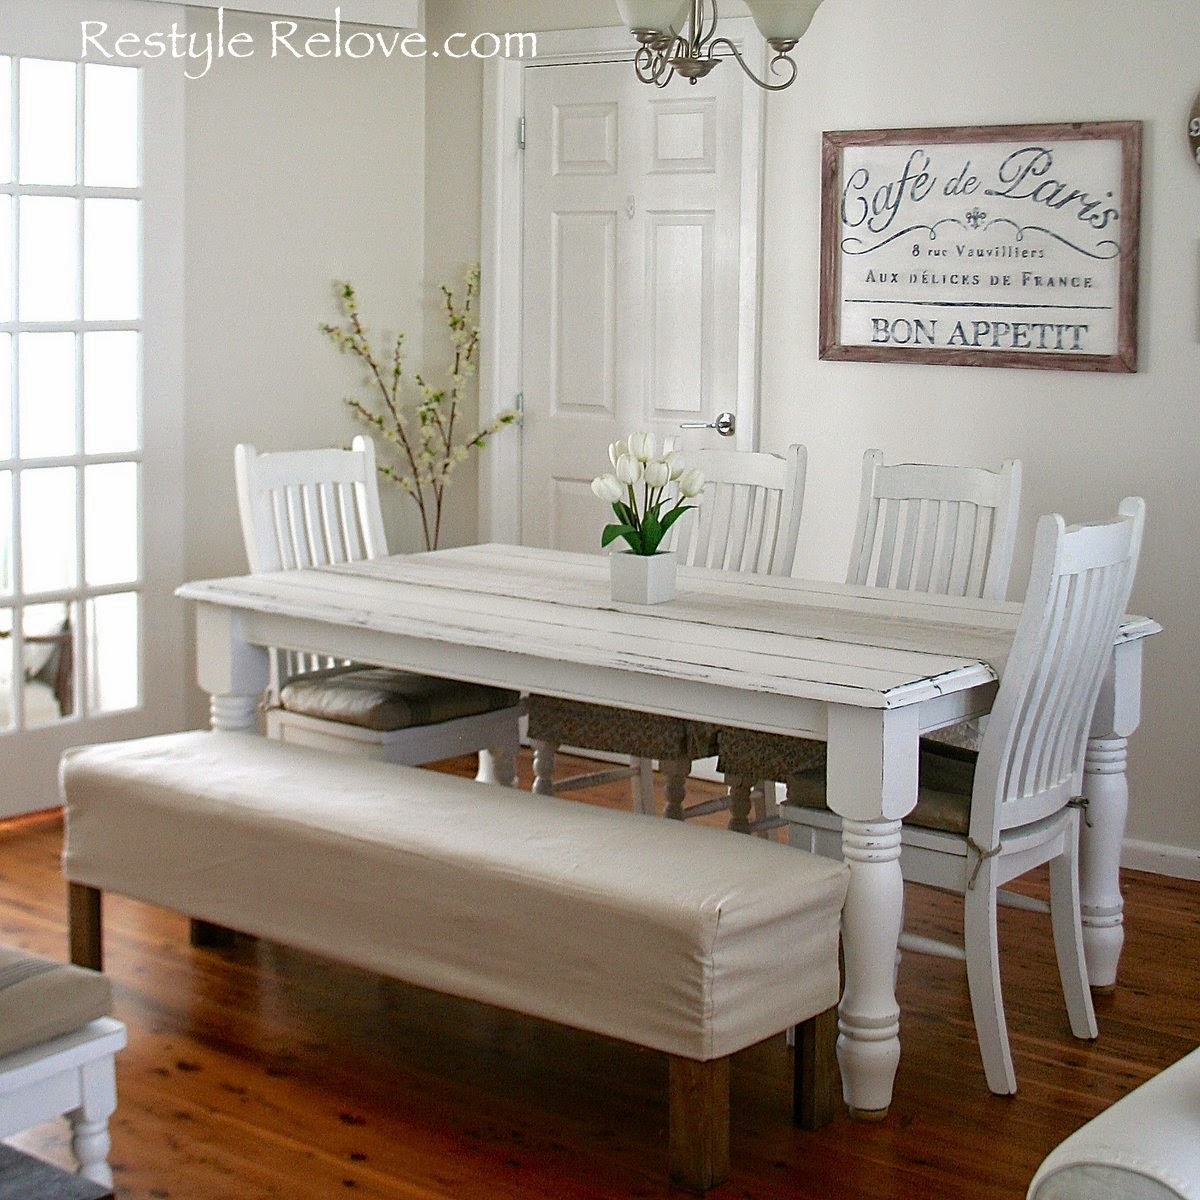 Padded Benches Living Room Restyle Relove Padded Dining Room Bench Seat With Removable